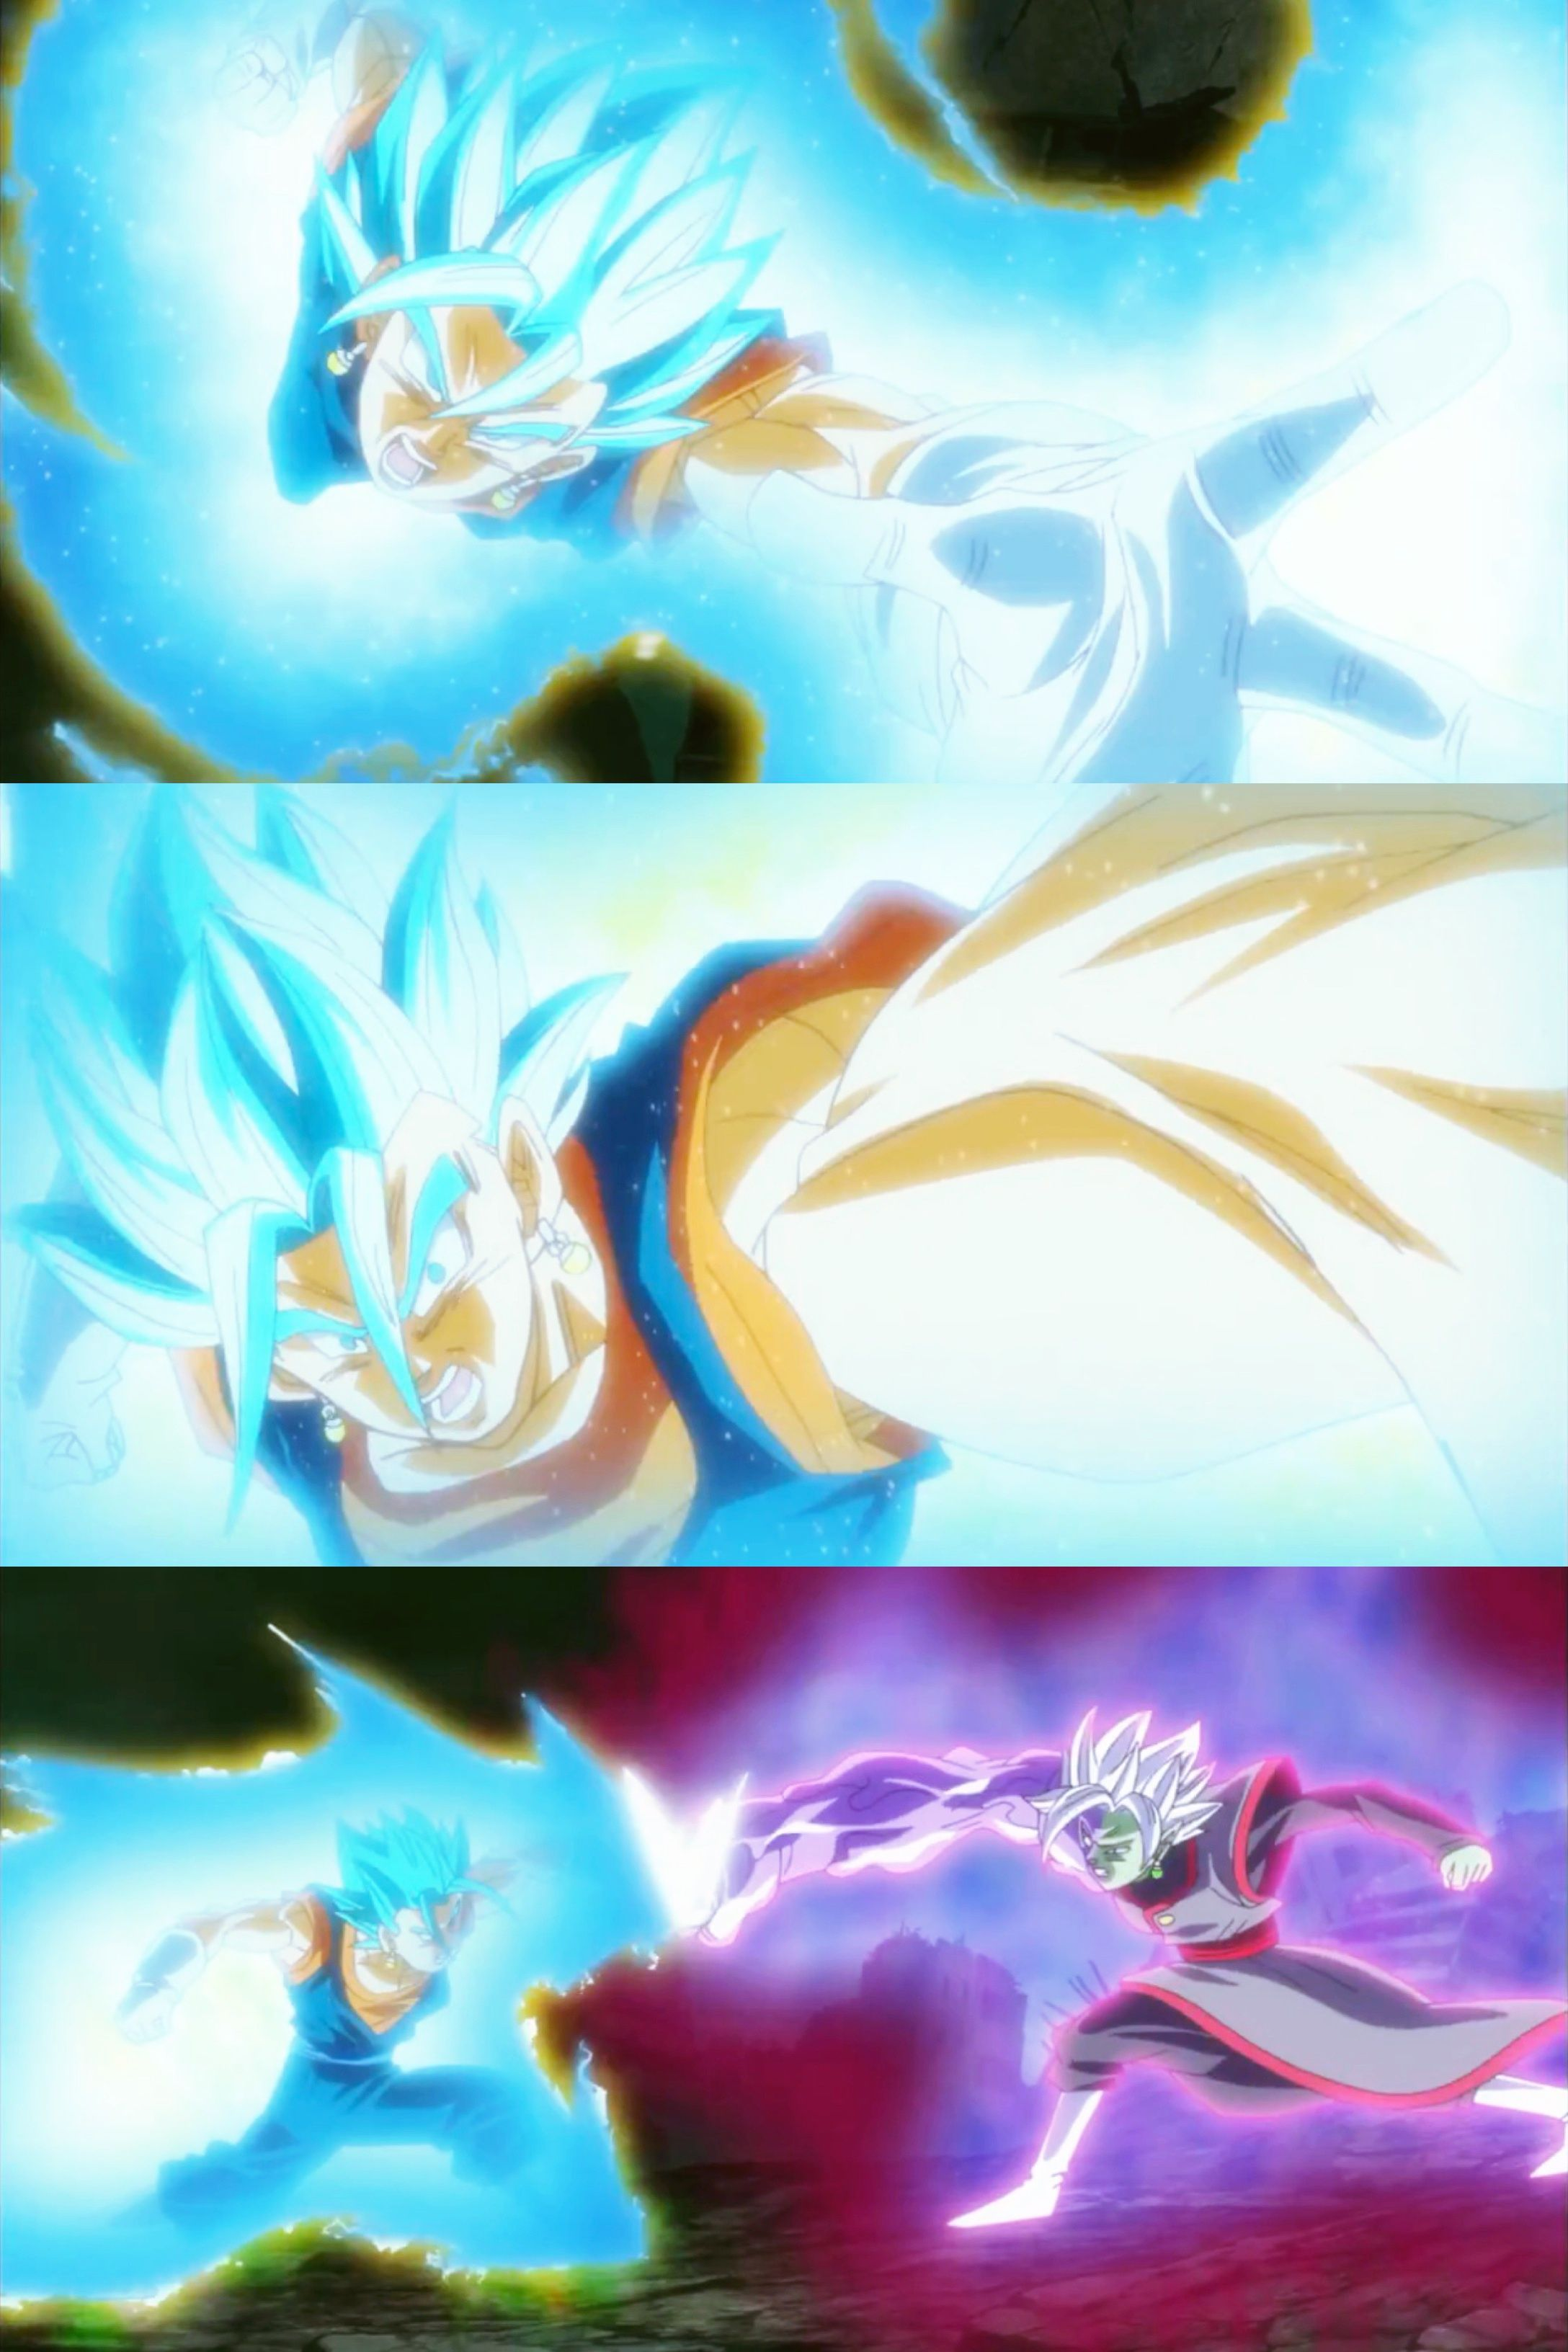 Epic Vegito Blue Vs Zamasu iPhone Wallpaper made with